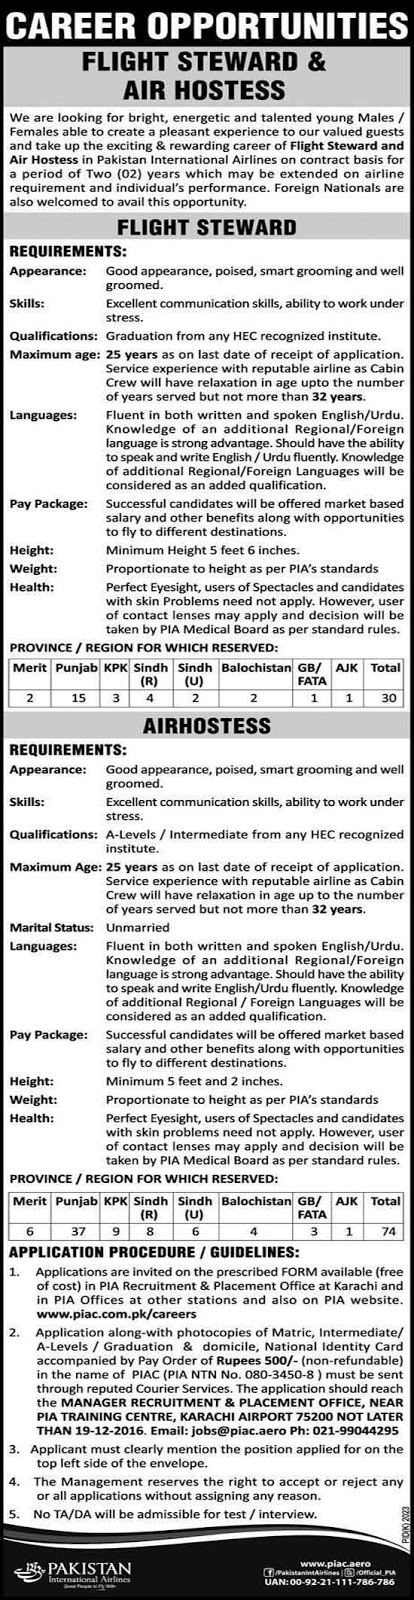 Air Hostess & Flight Steward PIA Karachi Jobs